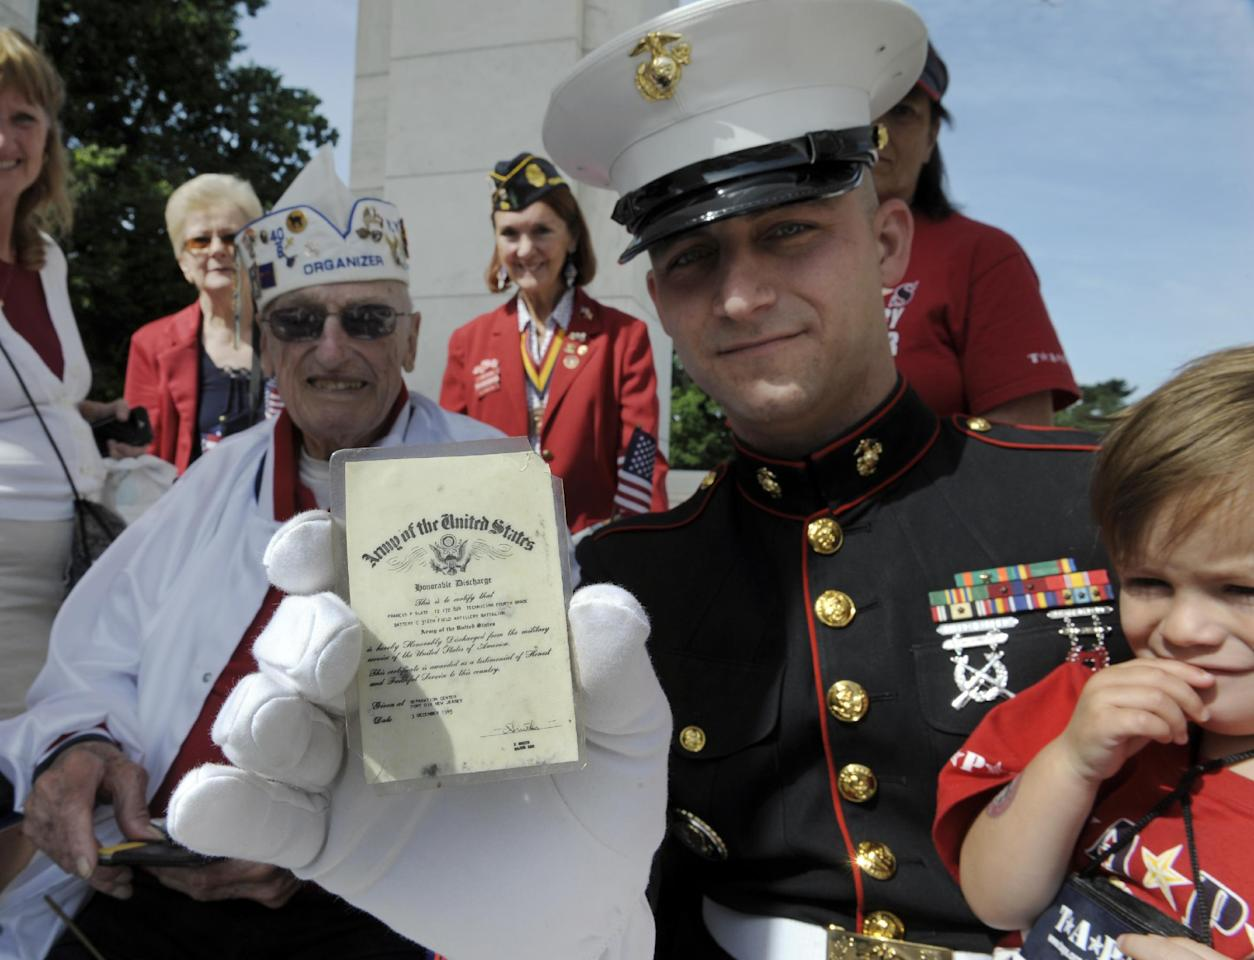 Marine Staff Sgt. Travis Hassell, center, and his son Issac show off Francis Slate's, left, Honorable Discharge Card from the U.S. Army Dec. 3, 1945, as they wait for President Barack Obama to deliver his Memorial Day address at Arlington National Cemetery in Arlington, Va., Monday, May 27, 2013. (AP Photo/Cliff Owen)